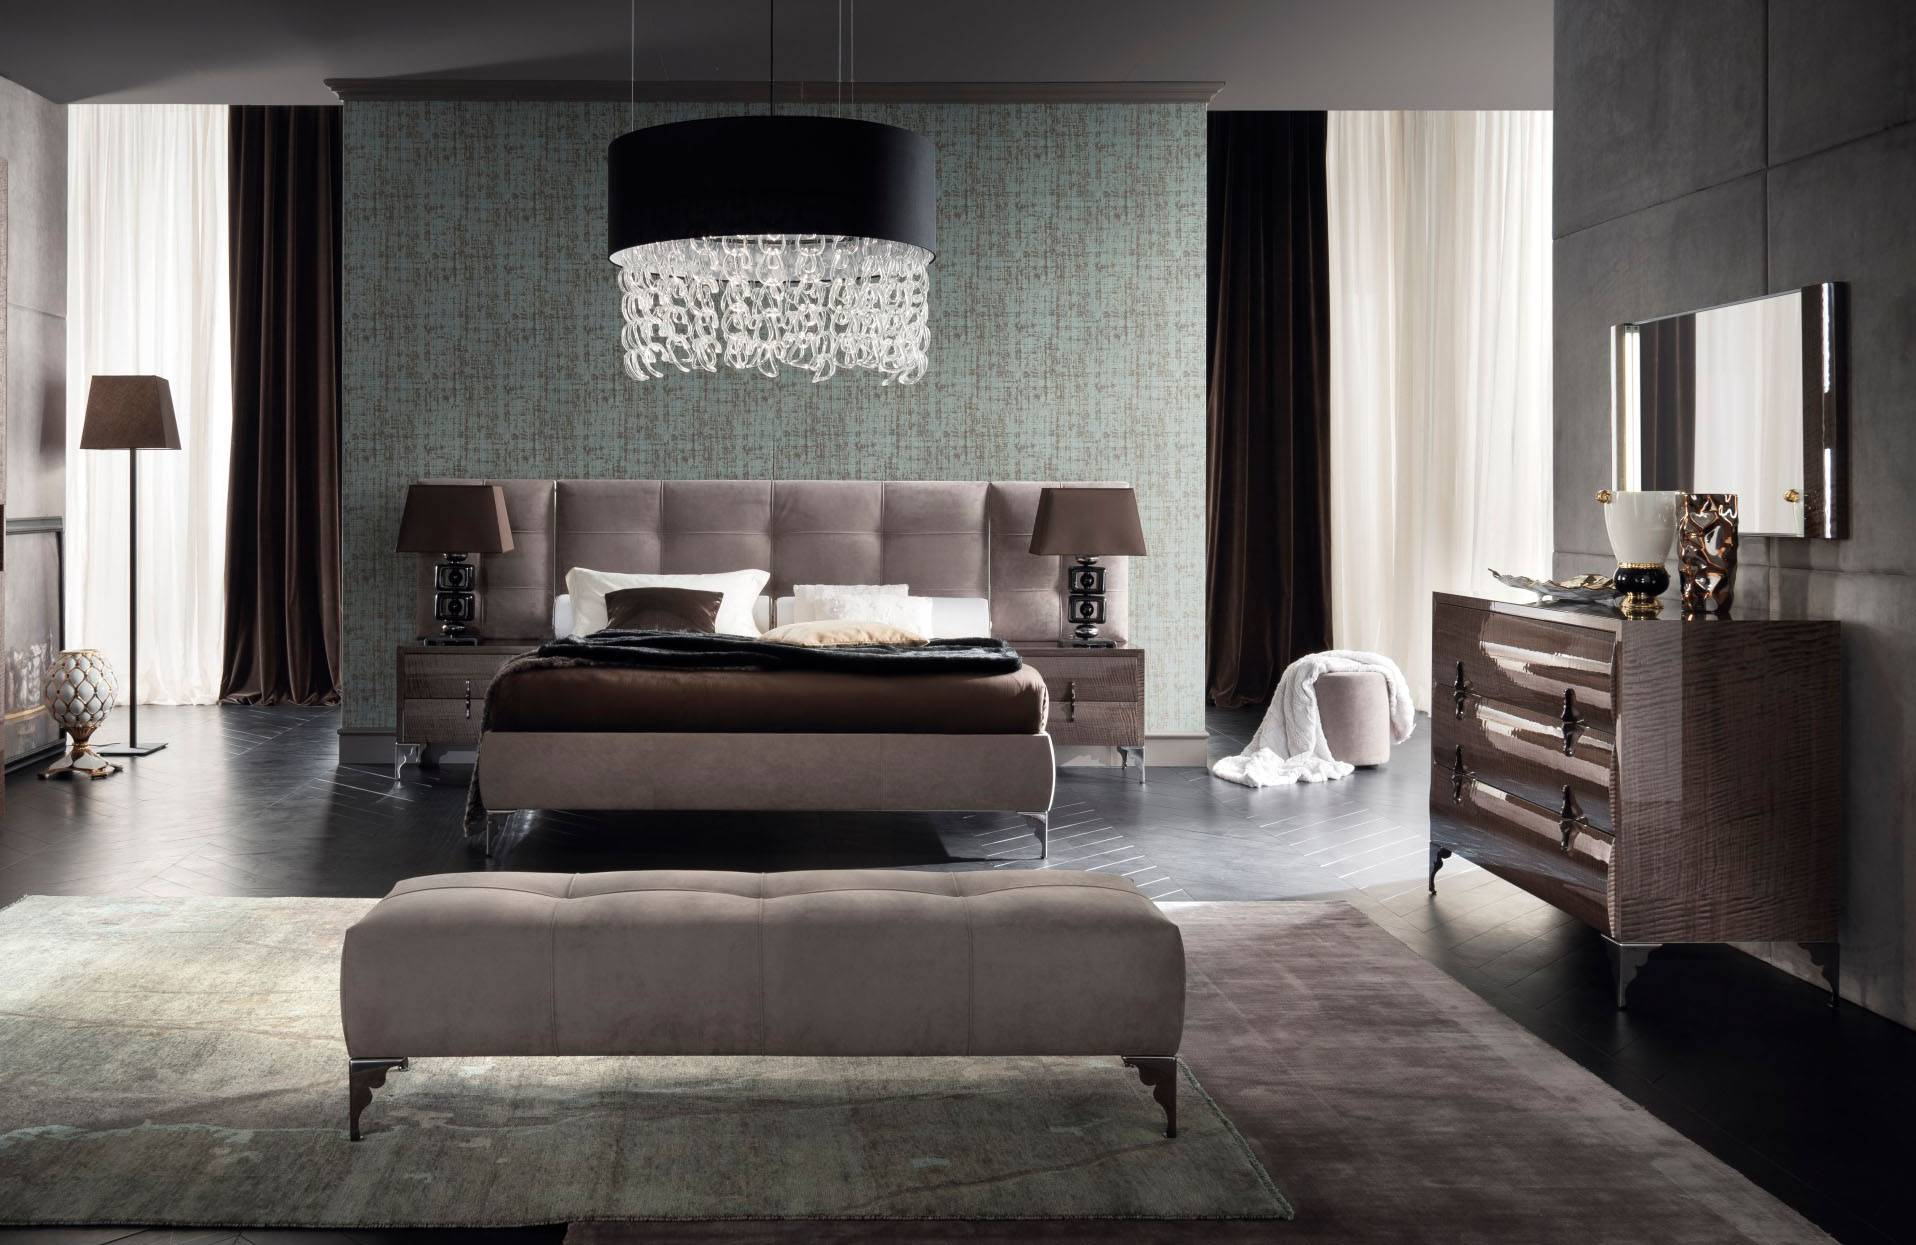 Italian bedrooms furniture Italian Style Bedroom Sets Collection Master Bedroom Furniture Prime Classic Design Made In Italy Leather Contemporary Master Bedroom Designs Las Vegas